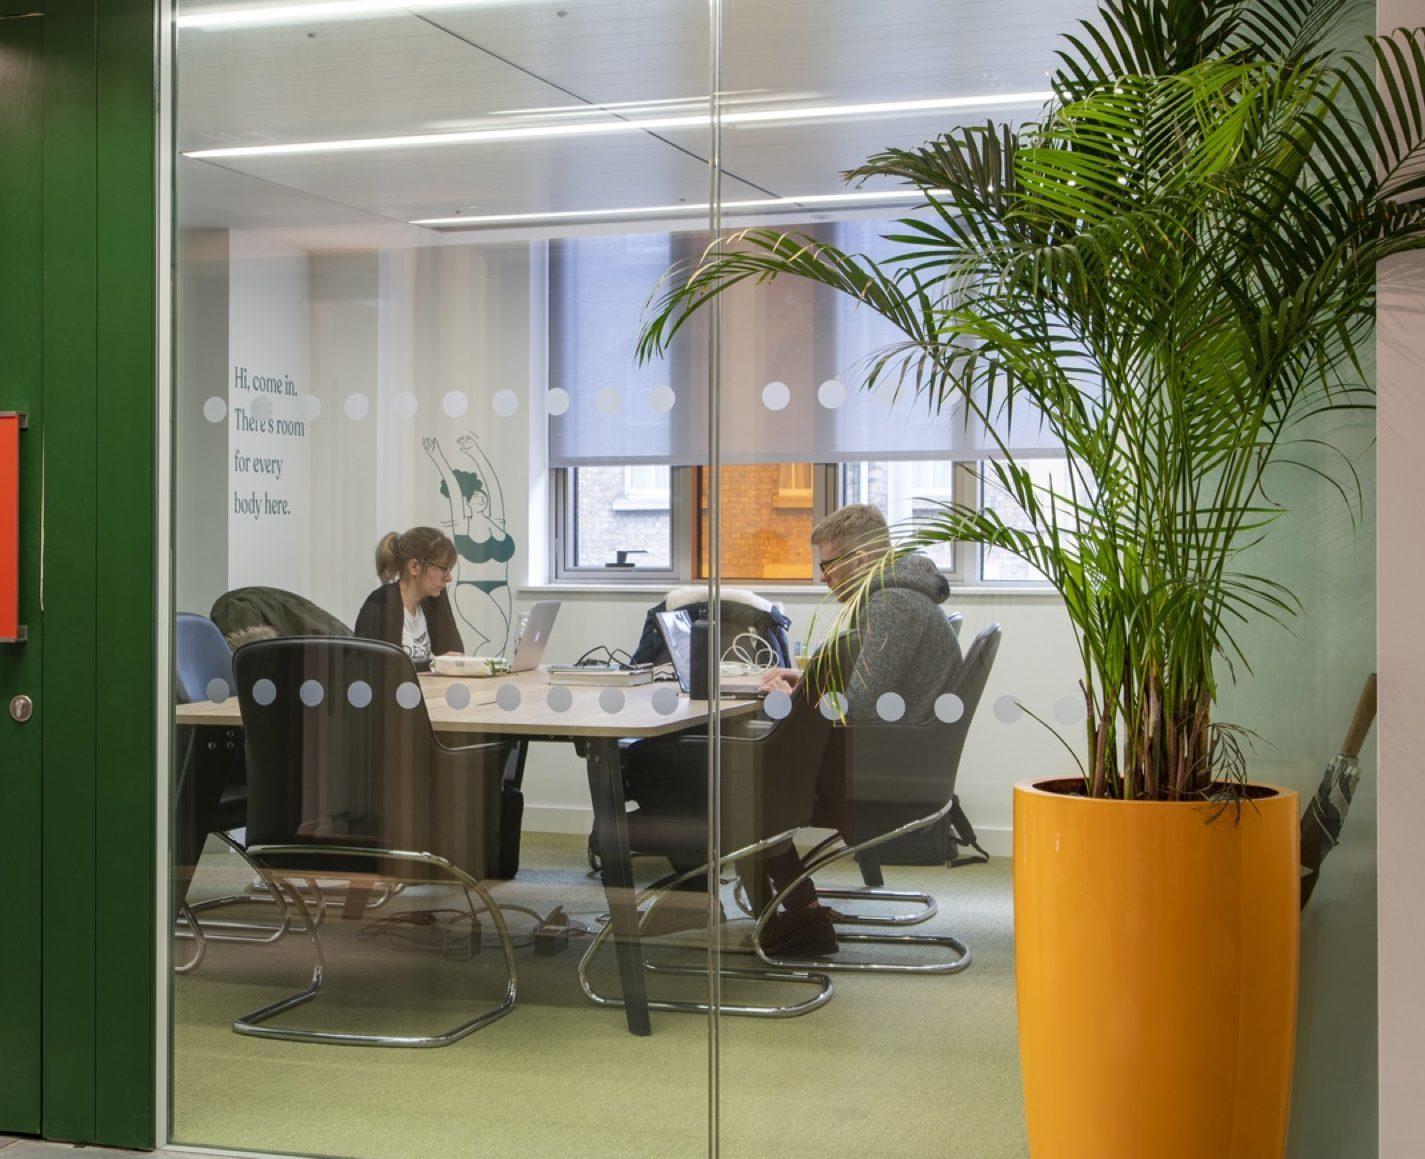 Biophilic design for workplace wellbeing